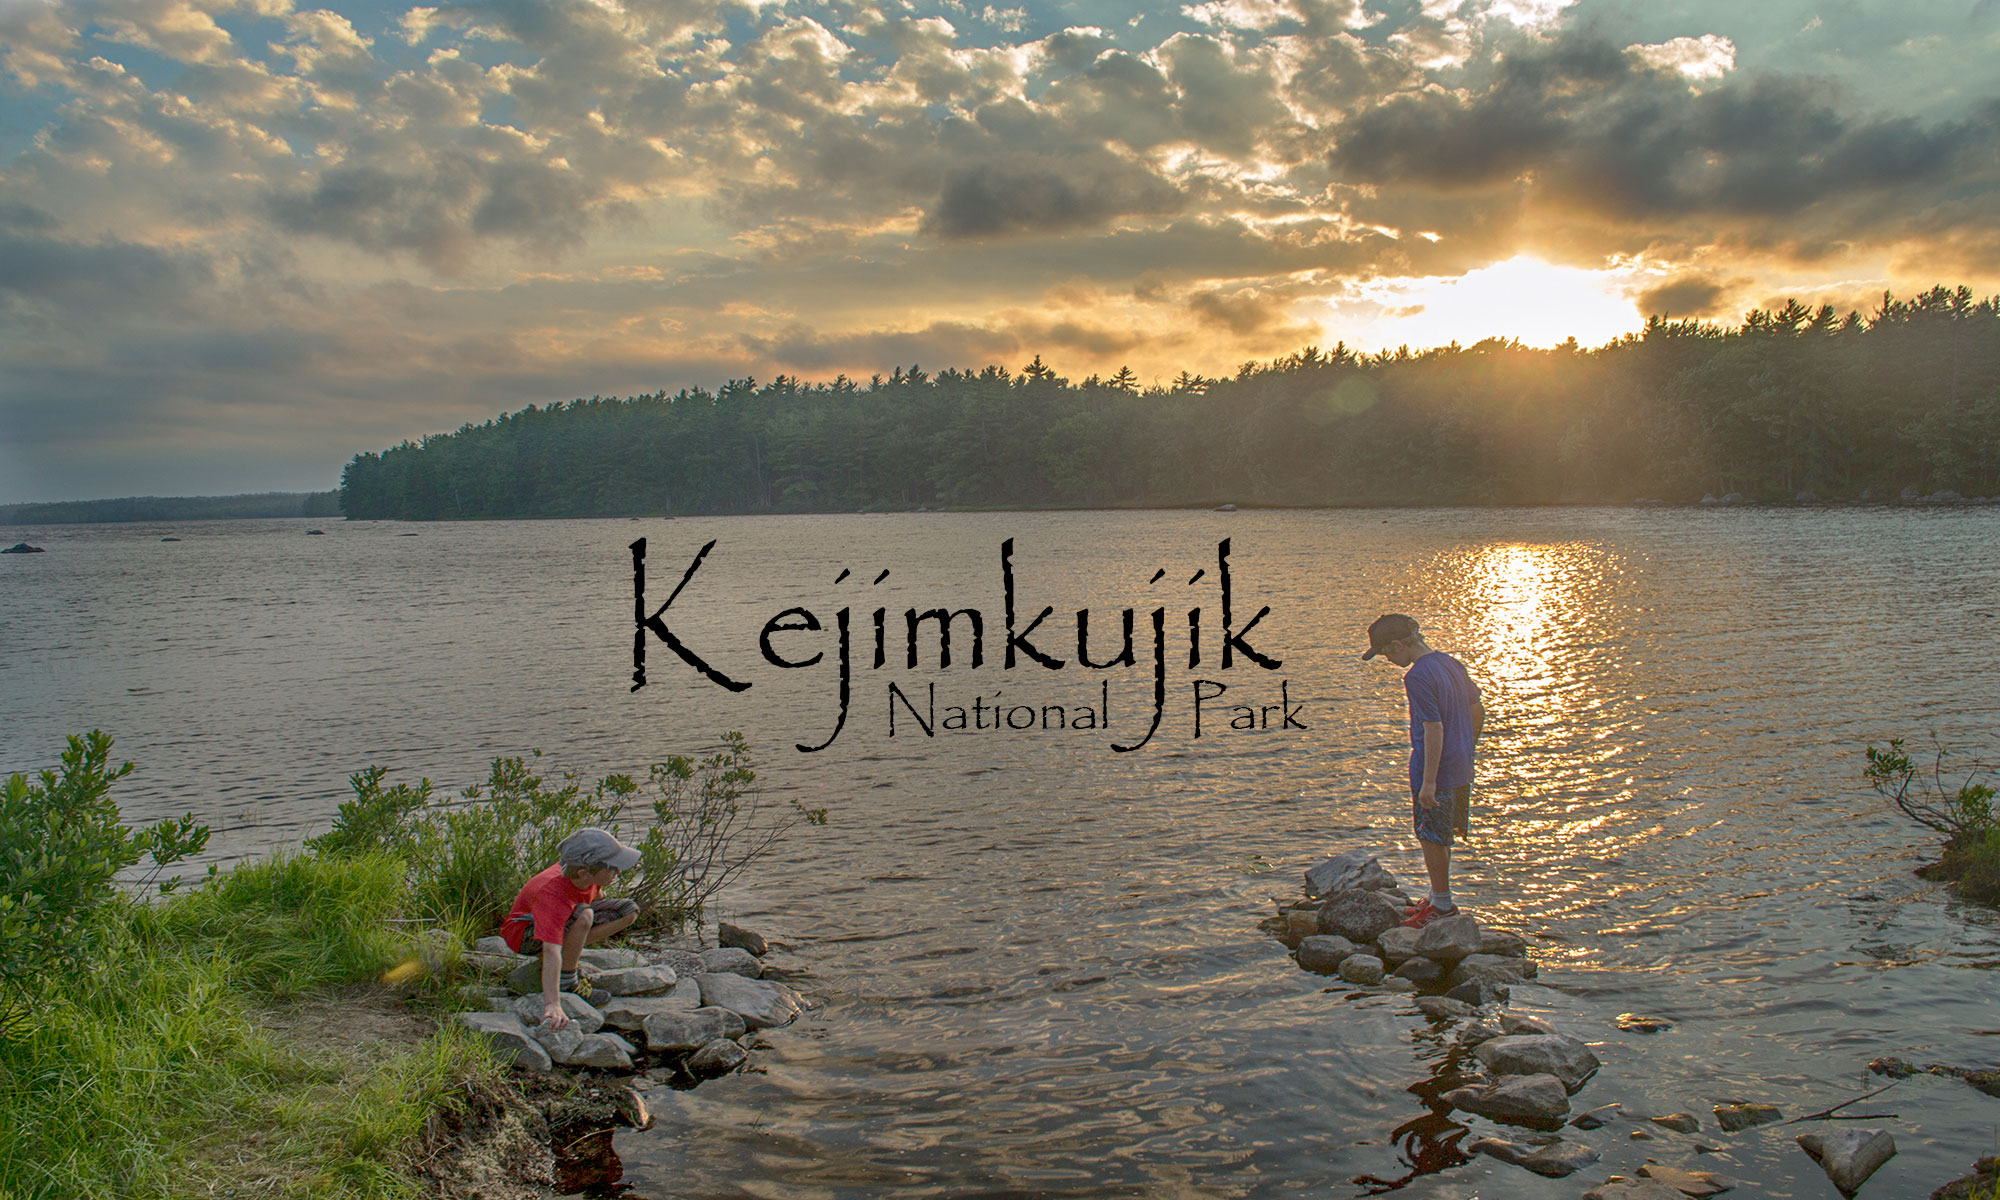 Kejimkujik National Park